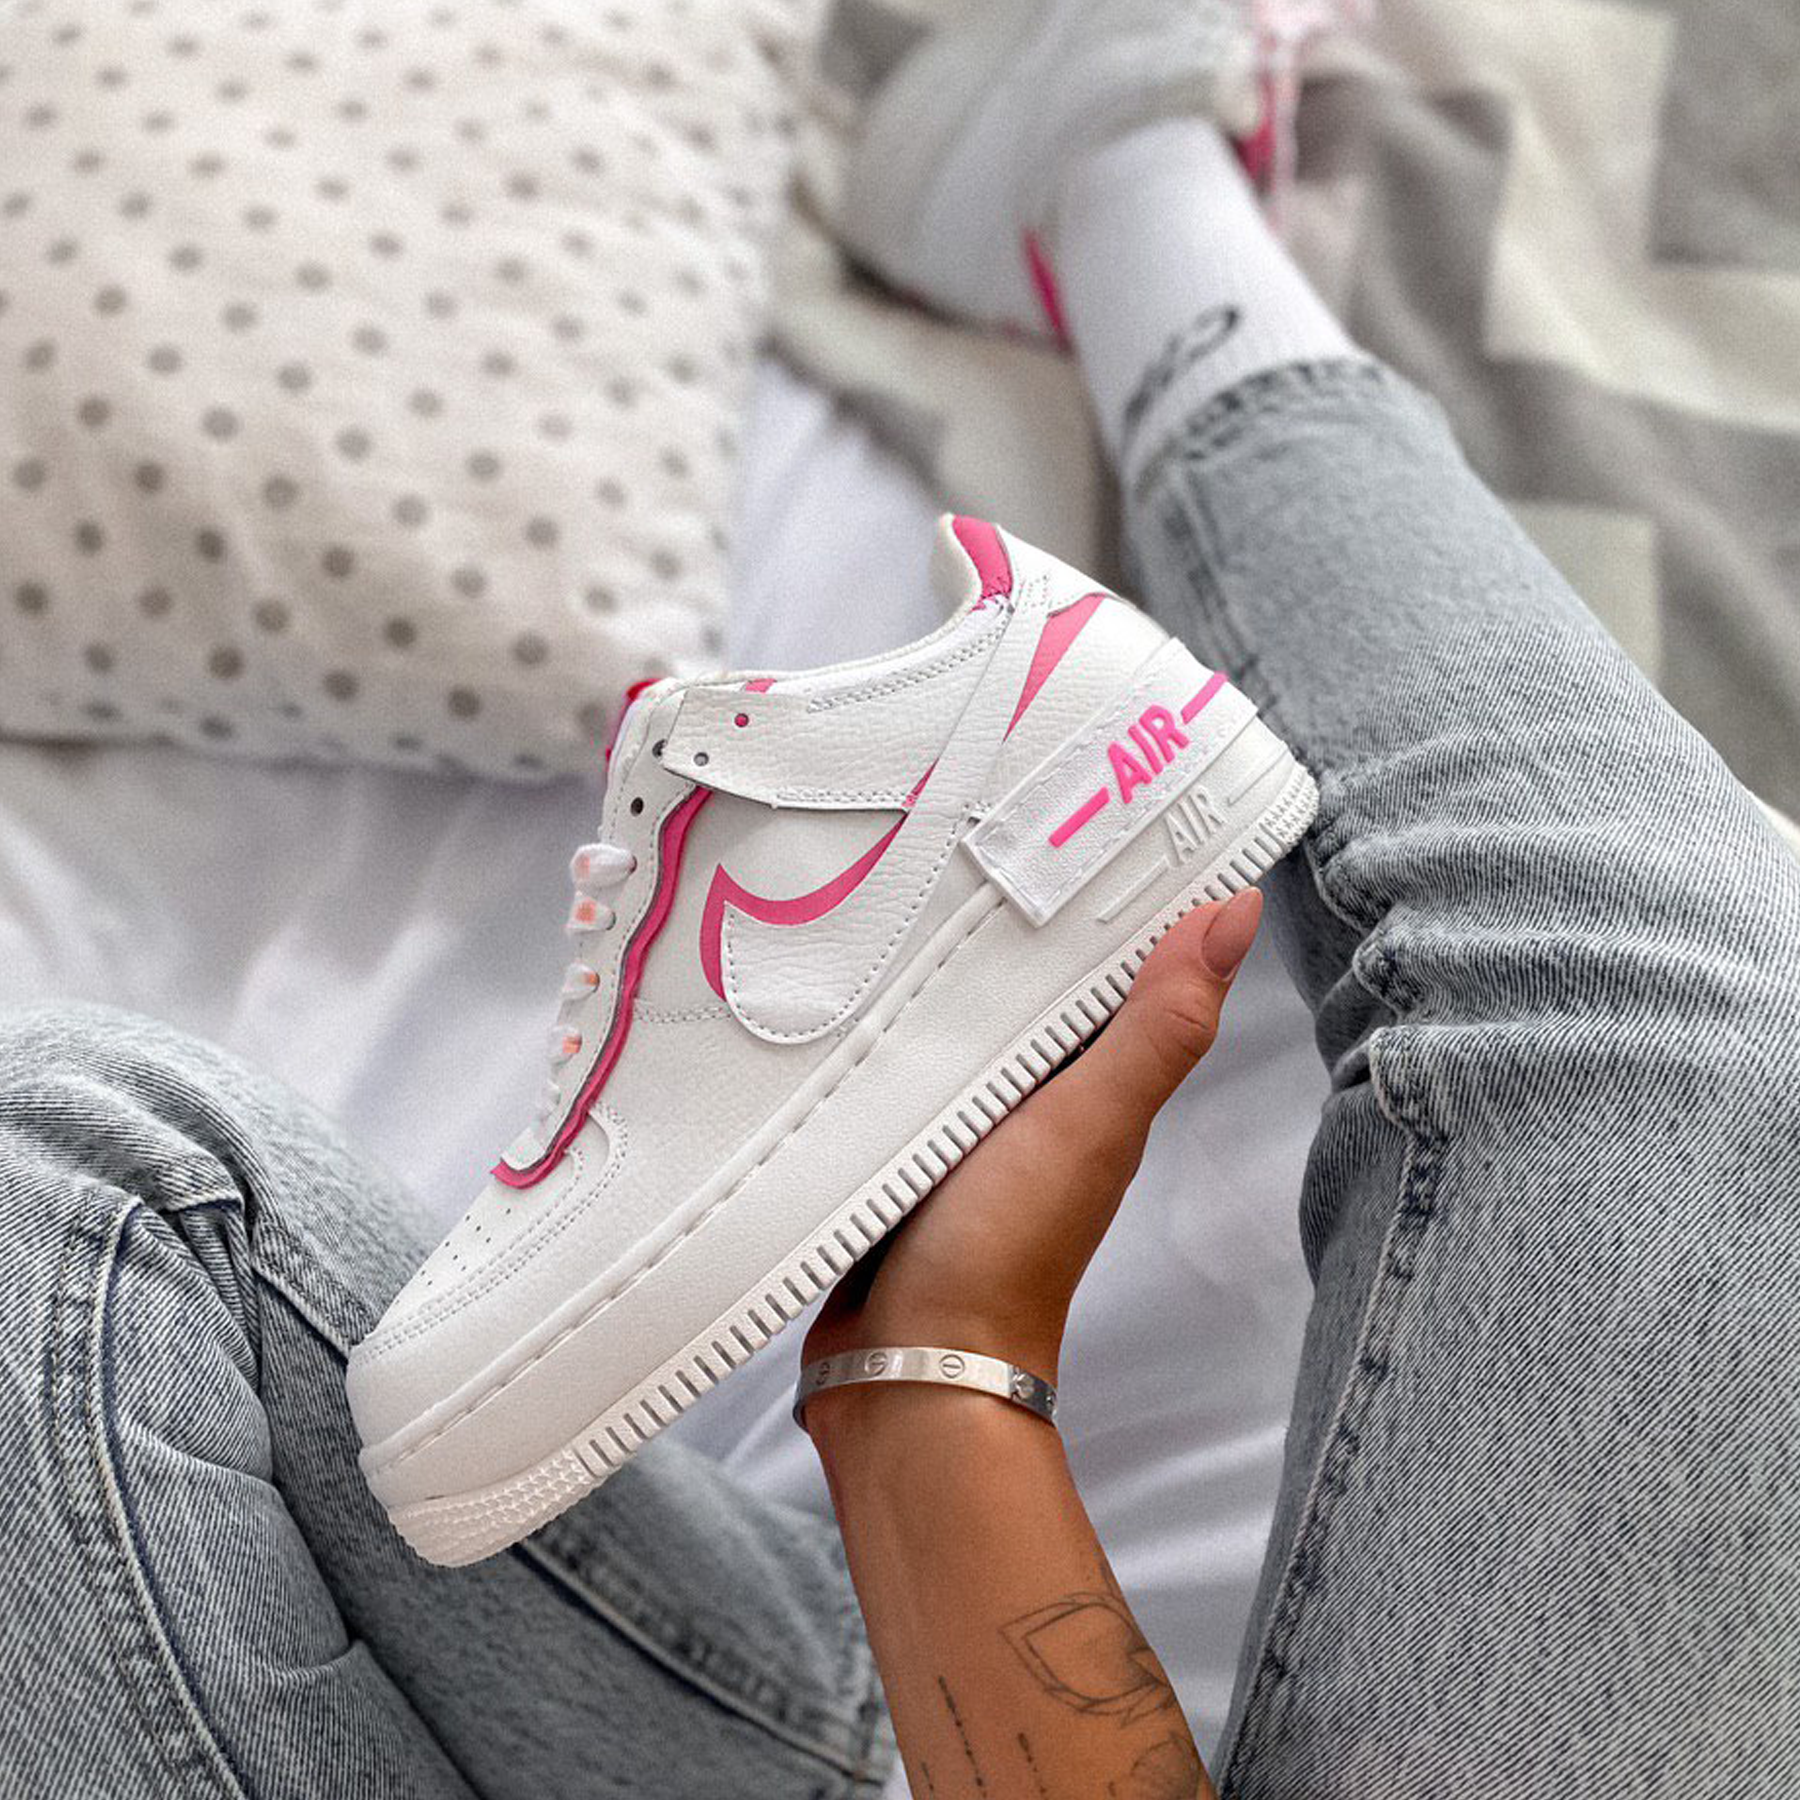 Кроссовки женские Nike Air Force 1 Shadow Gym Red / White Pink